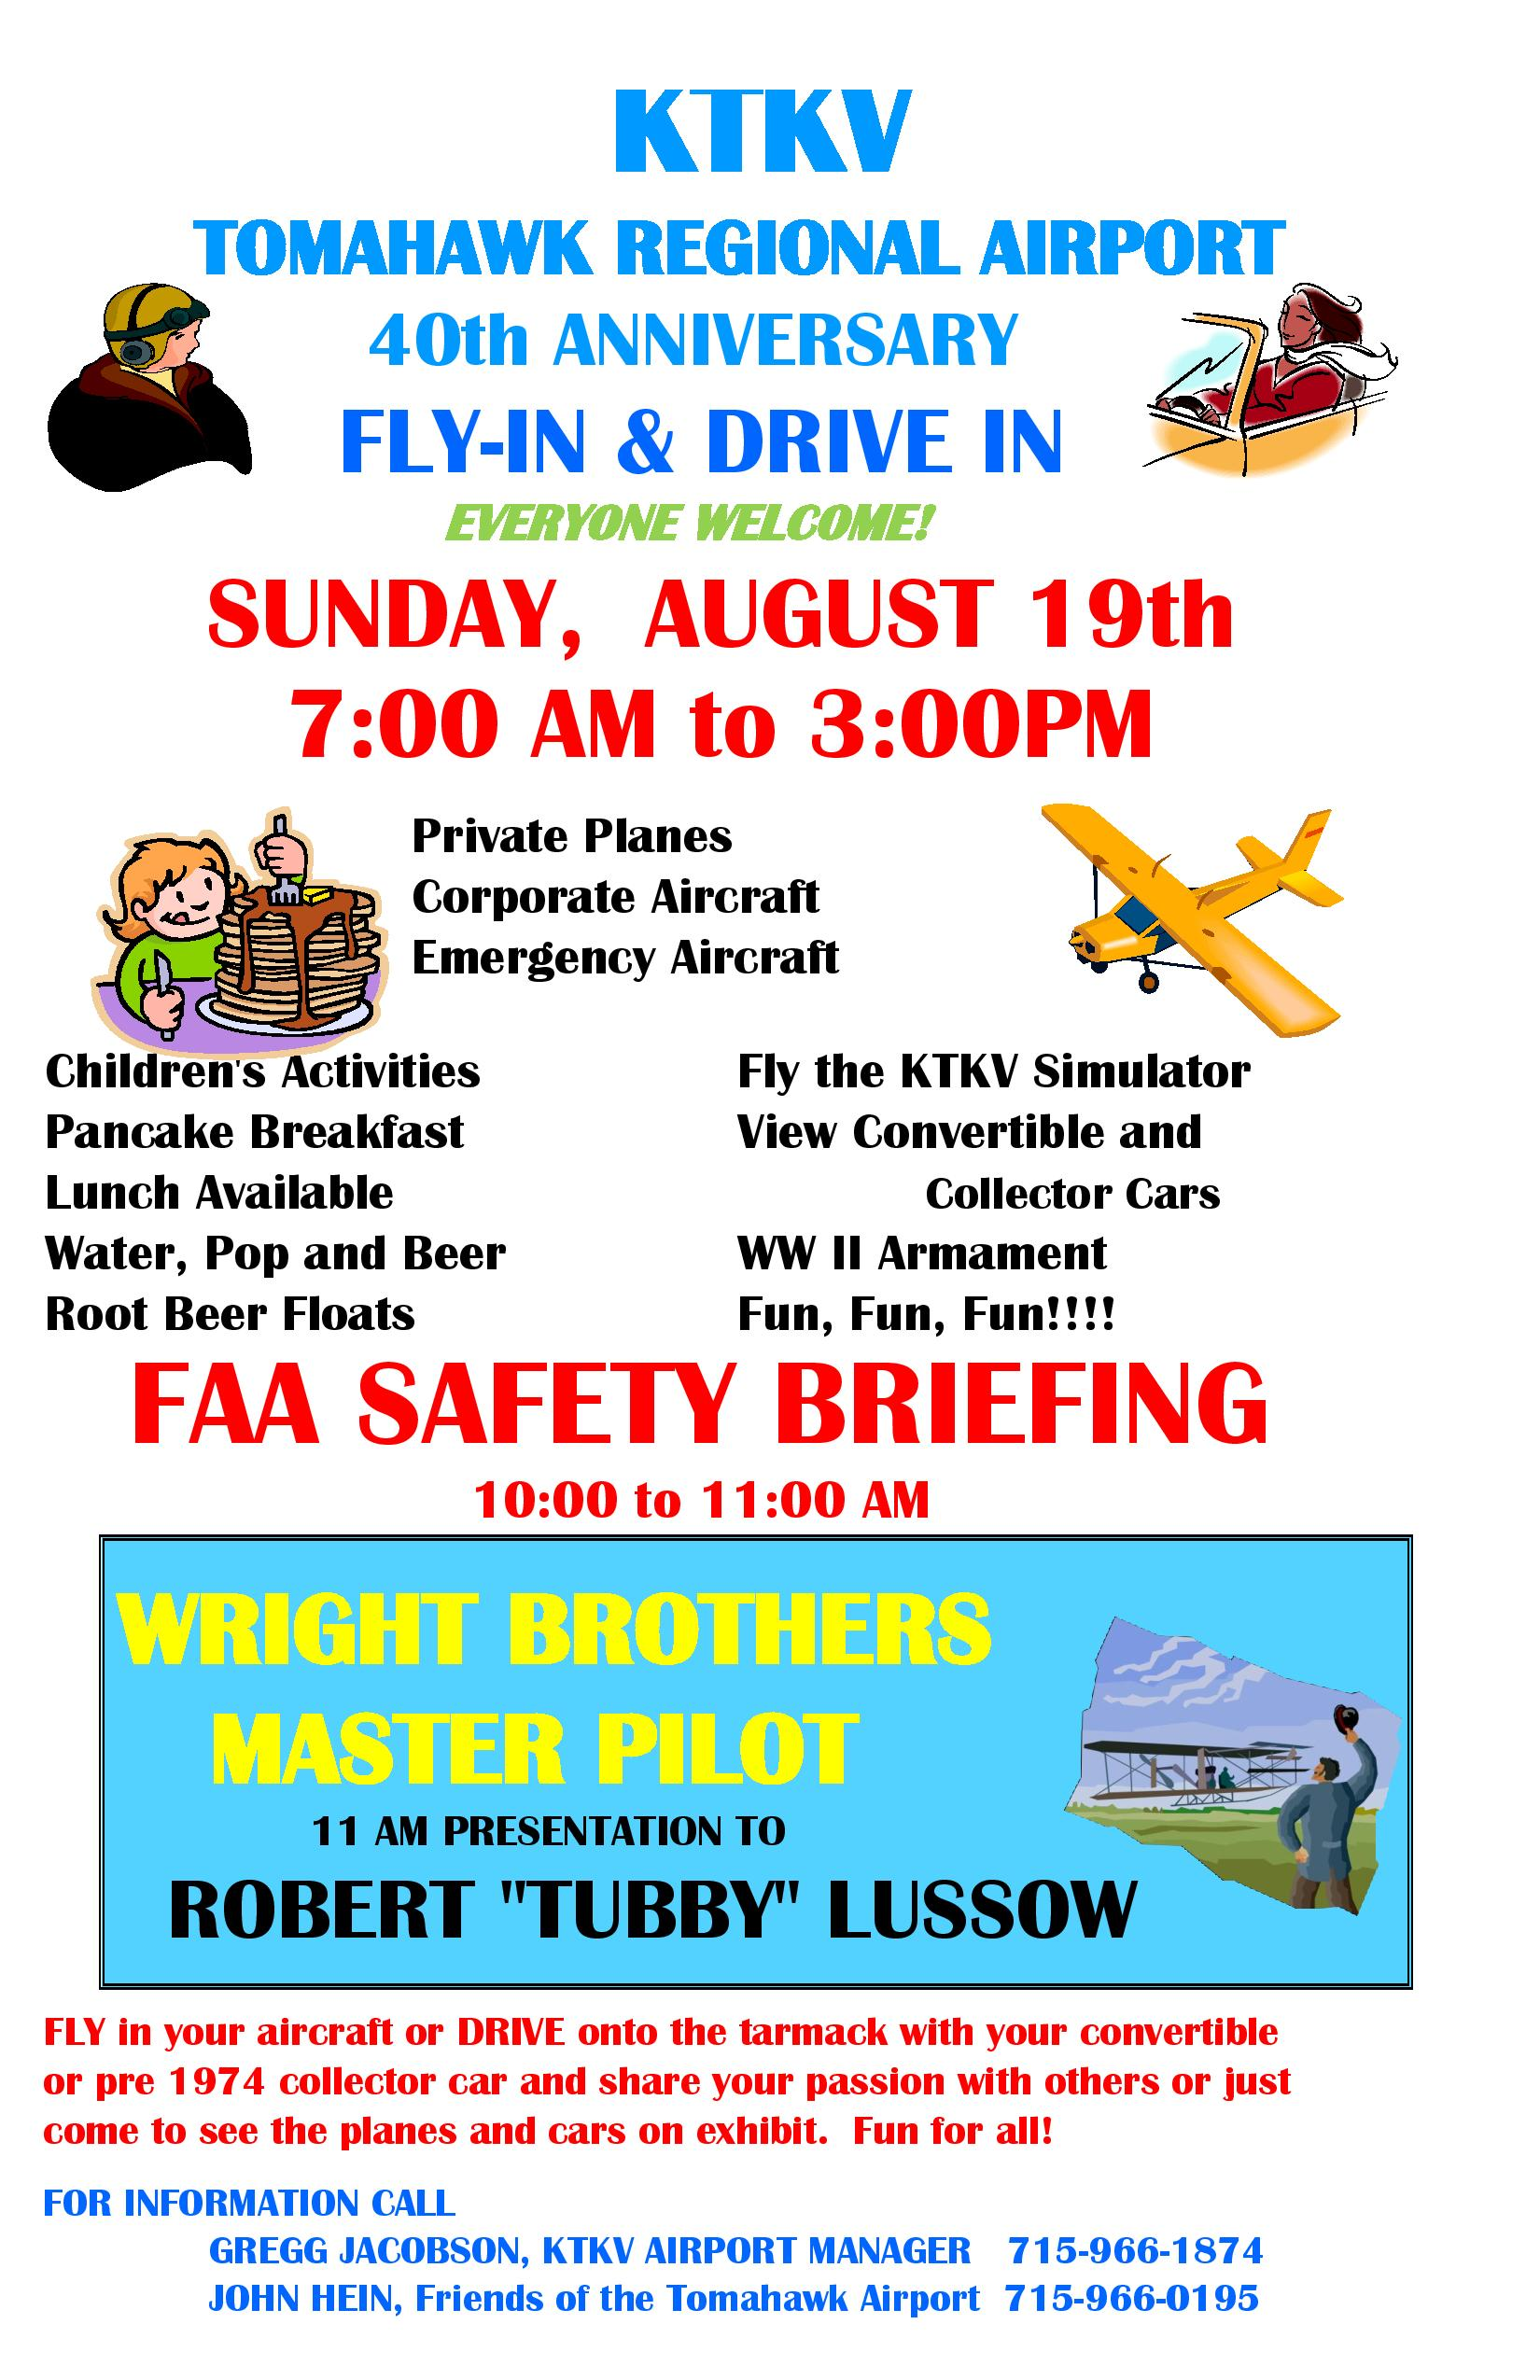 KTKV 40th Anniversary Fly-In & Drive-In